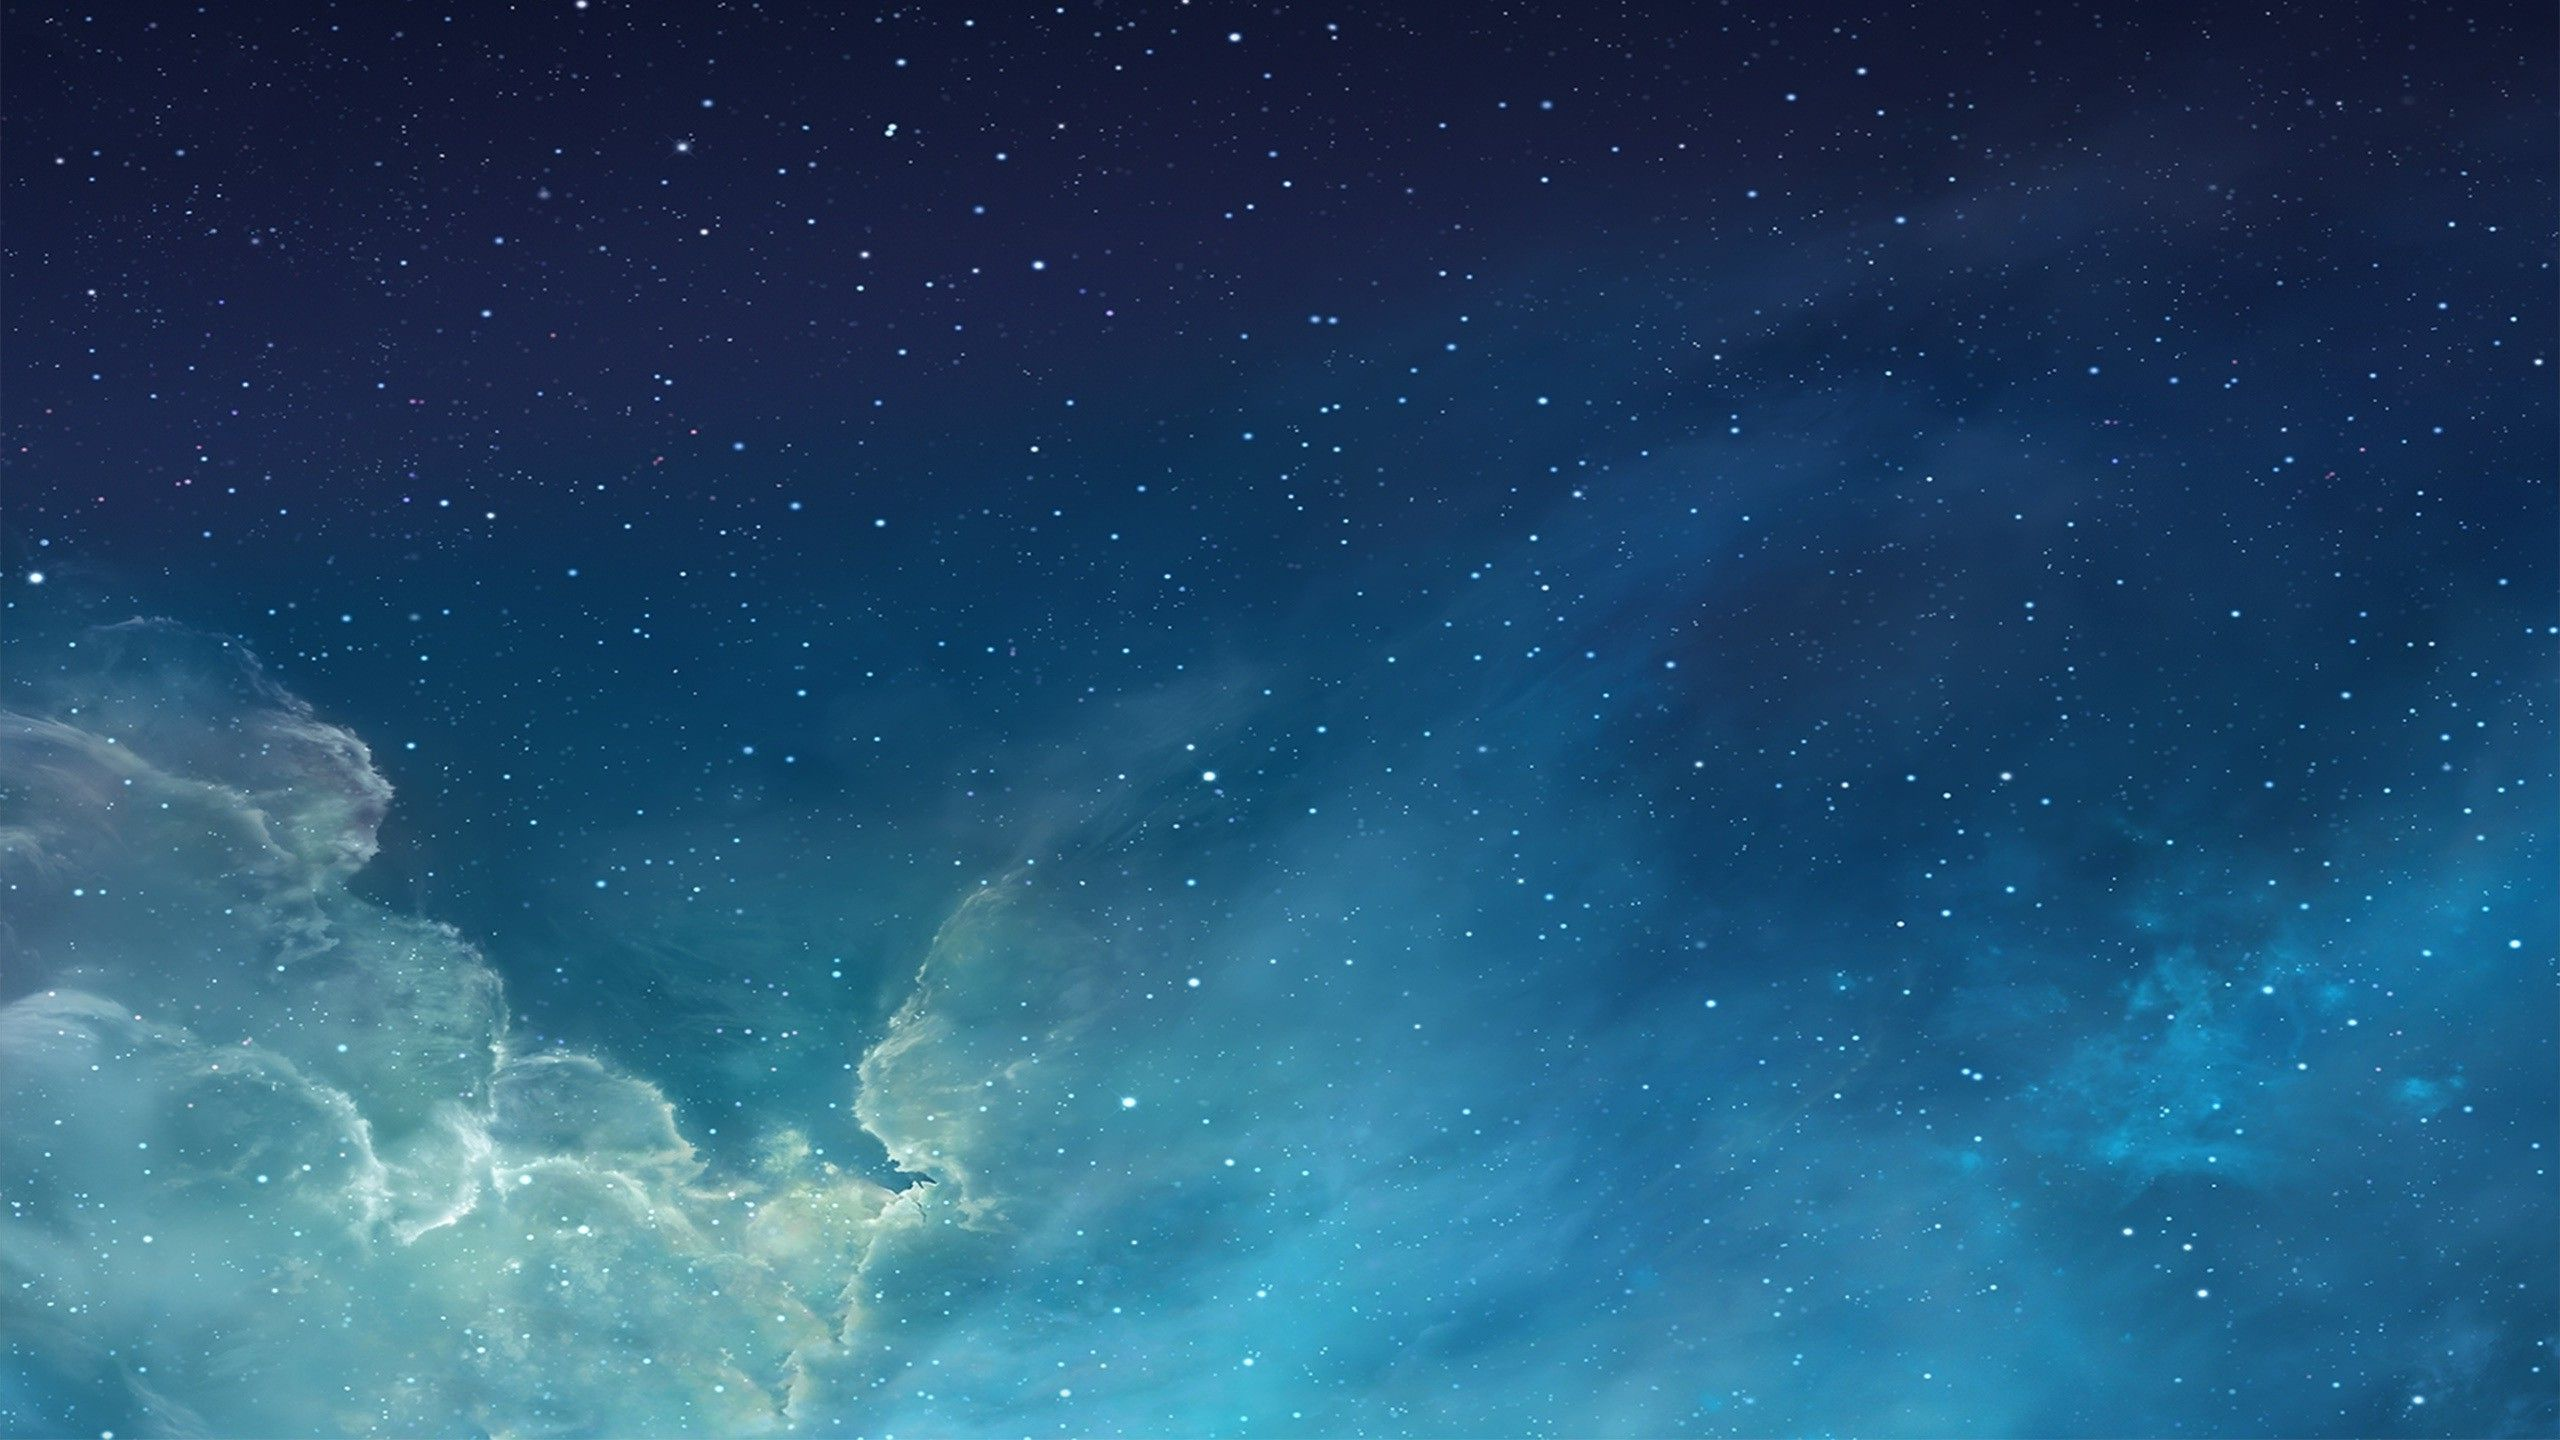 Sky Wallpapers HD, Desktop Backgrounds, Images and Pictures 2560x1440